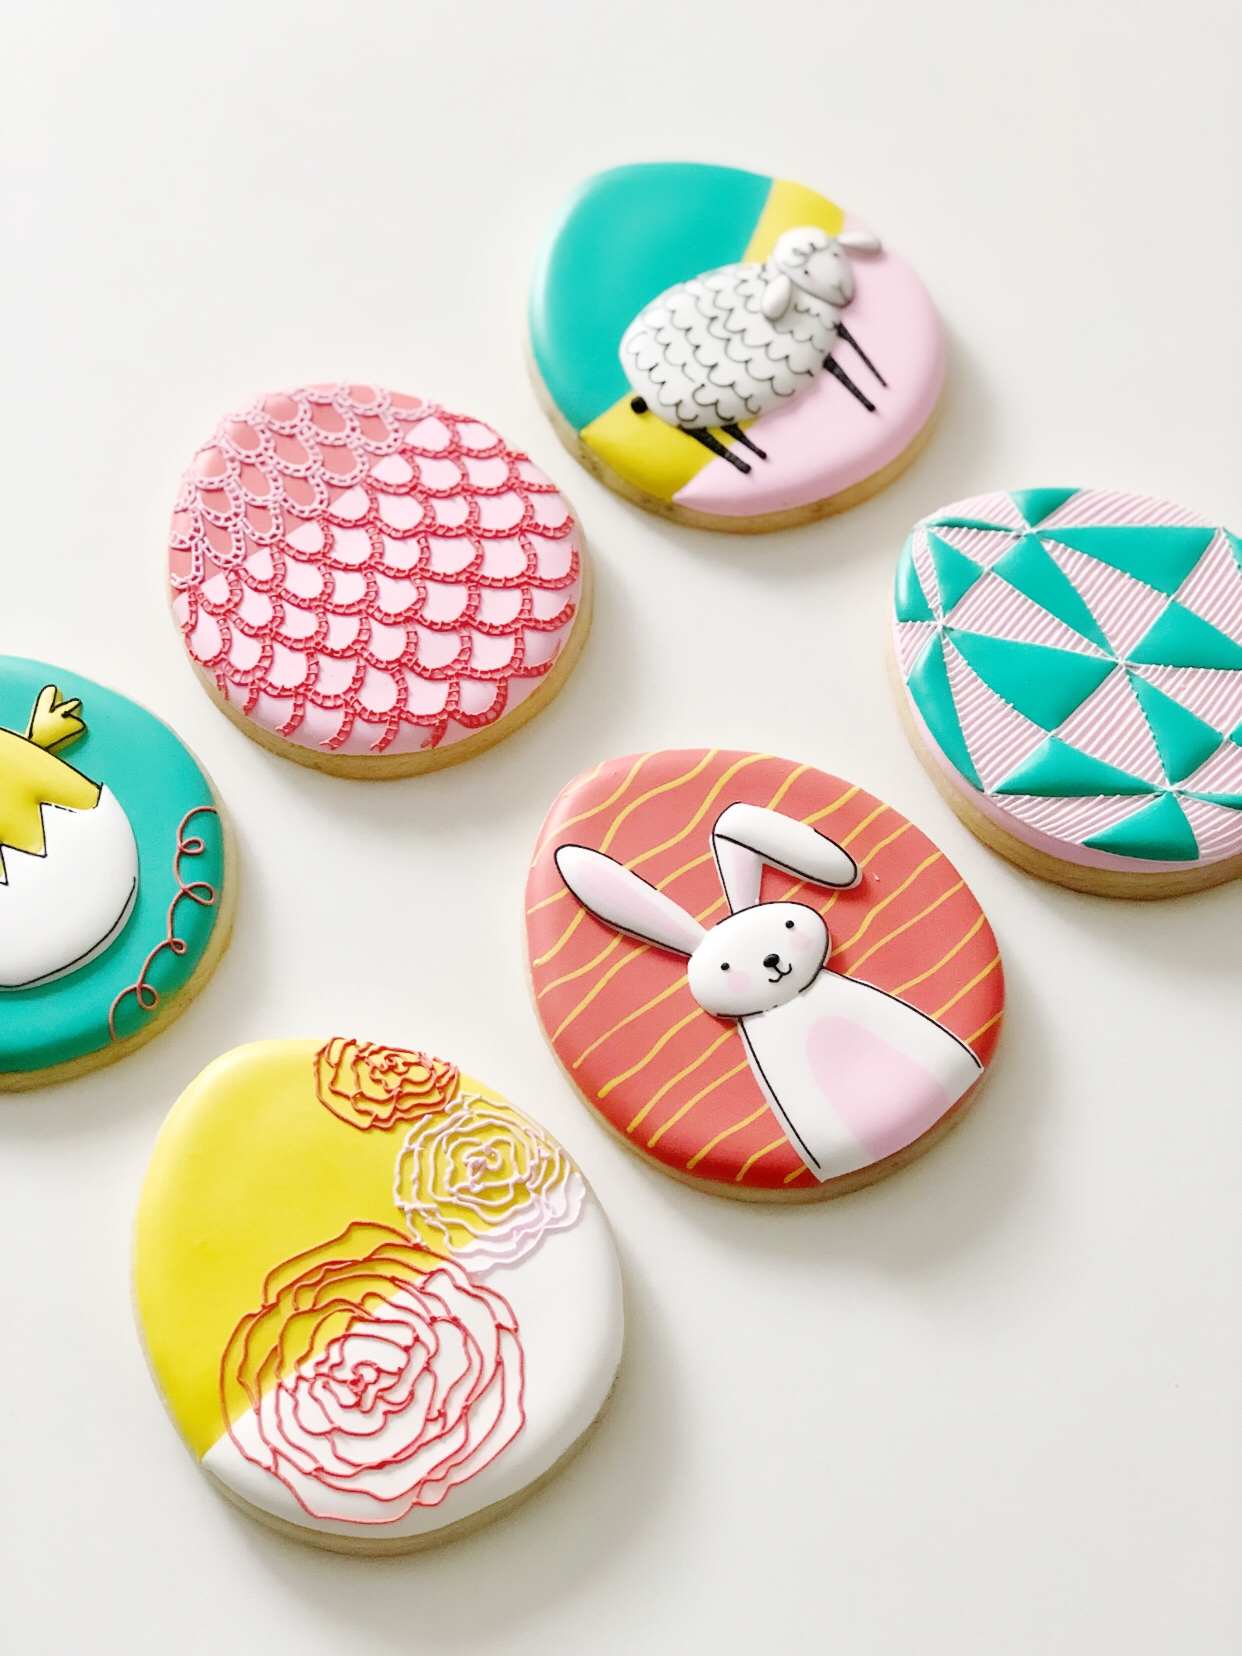 SEASONAL COOKIE DECORATING WORKSHOP